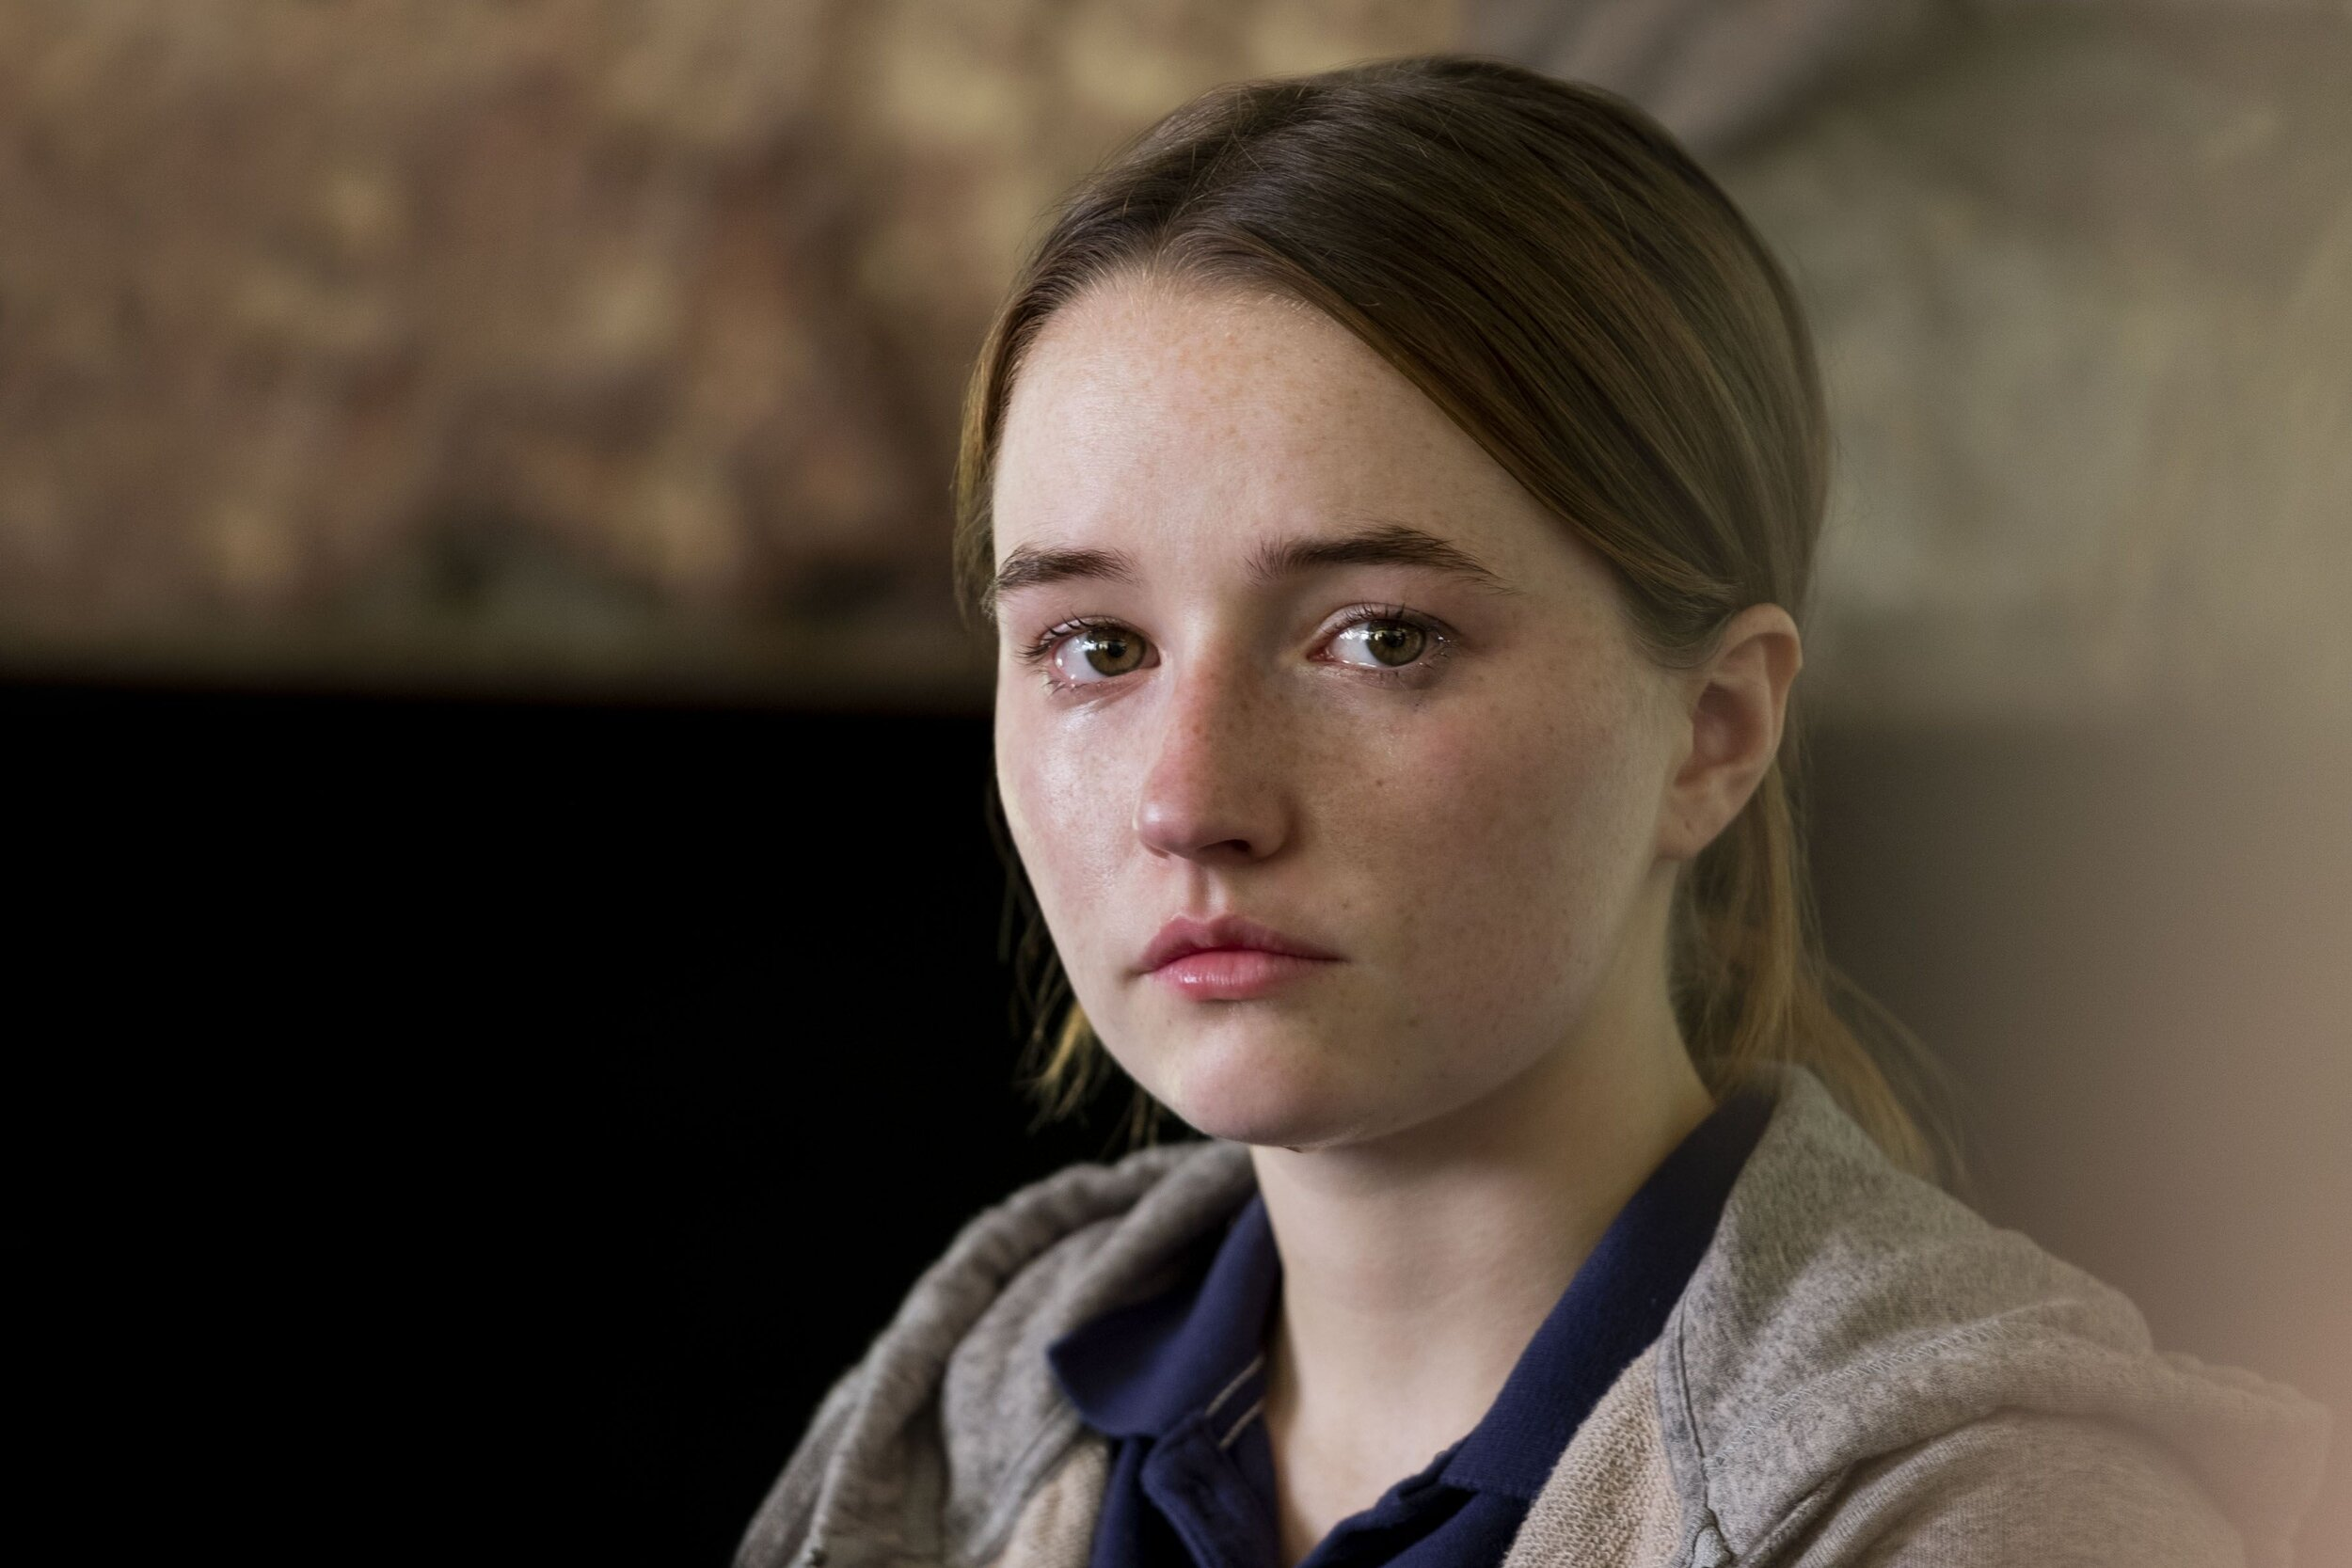 Netflix's Unbelievable  is a powerful, powerful drama about the women detectives whose persistence and compassion helped solve a serial rape case.